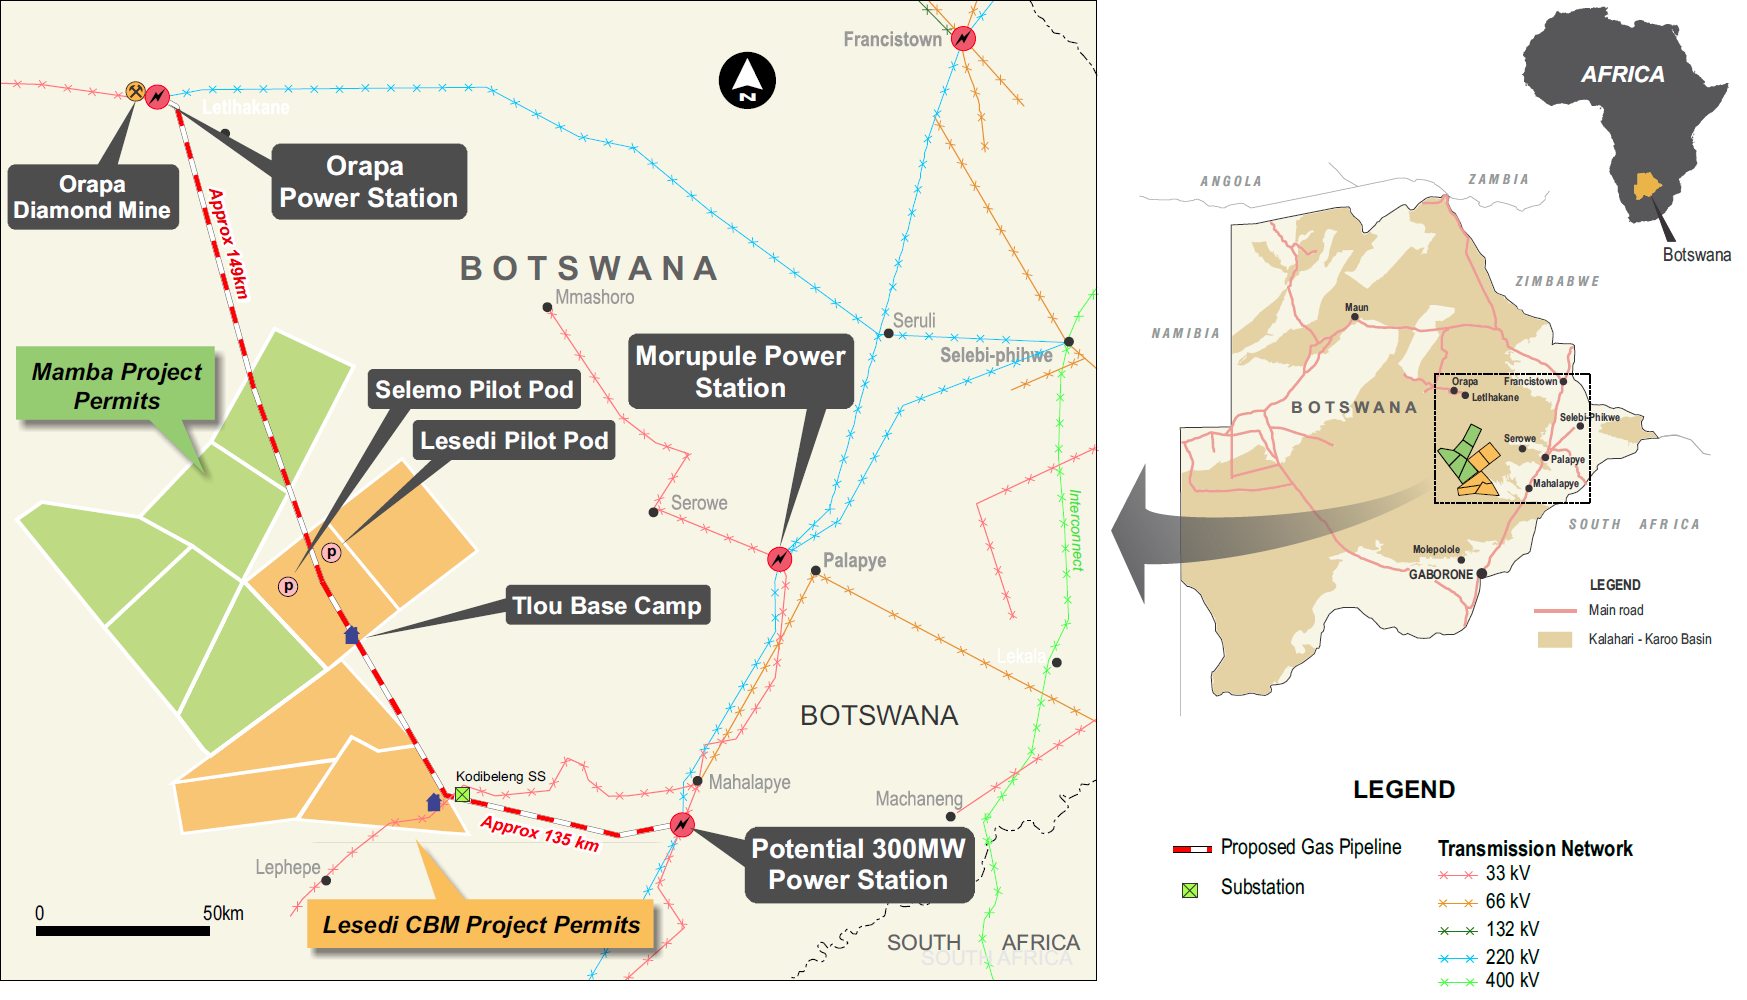 A map of Tlou's operations in Botswana